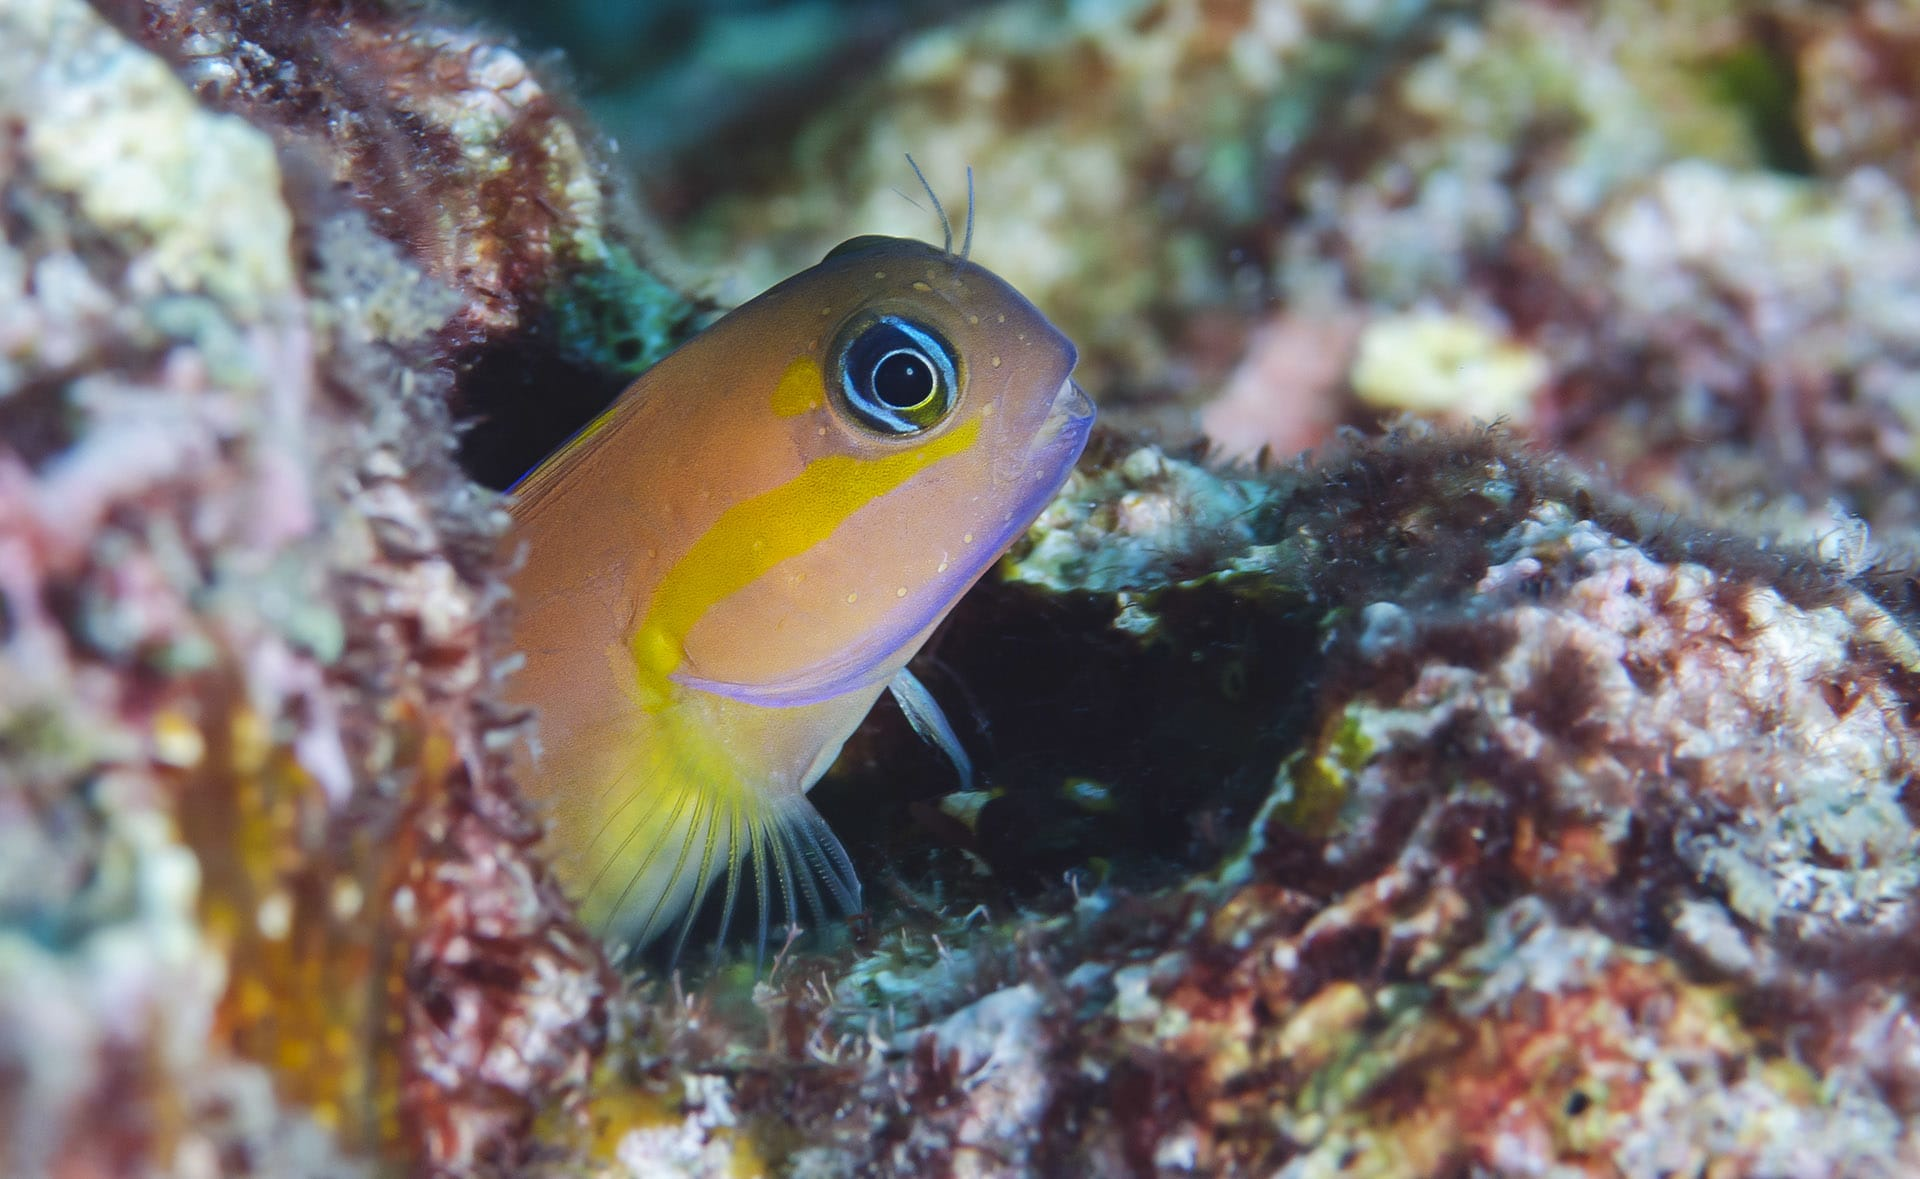 blenny-pepping-from-burrow-blue-eyes